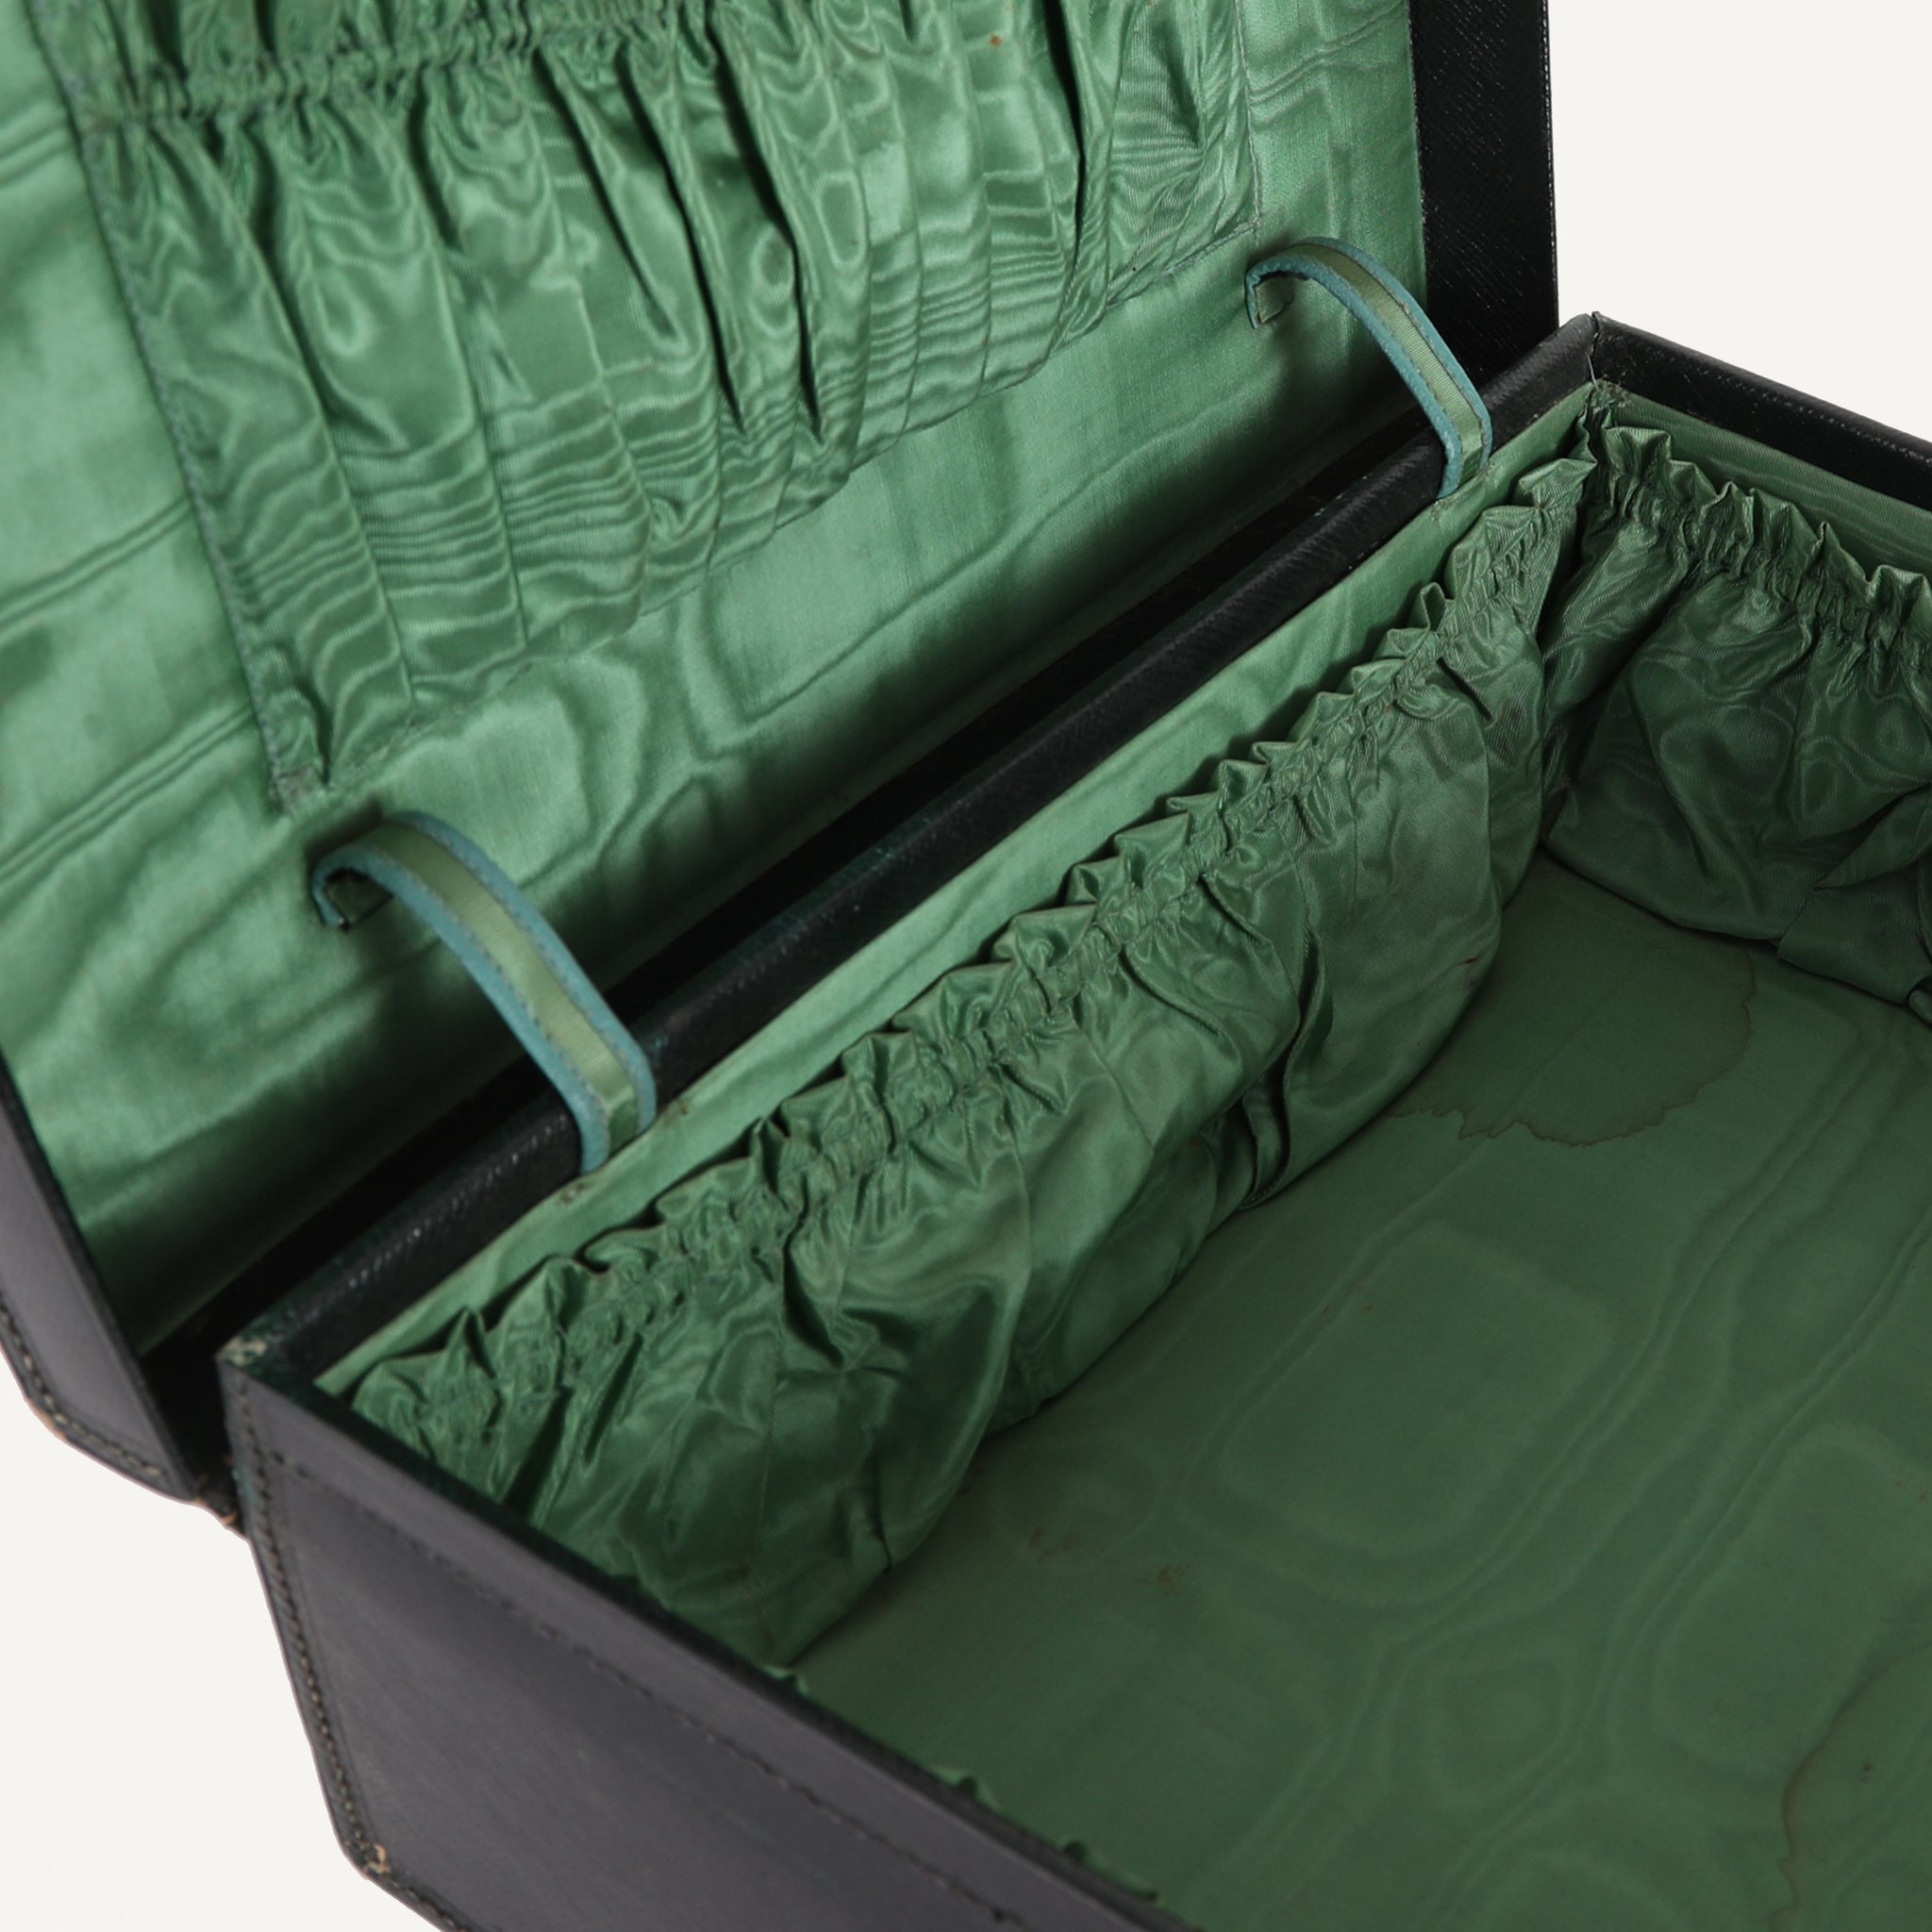 ANTIQUE LEATHER FINNAGAN'S TRAVEL CASE